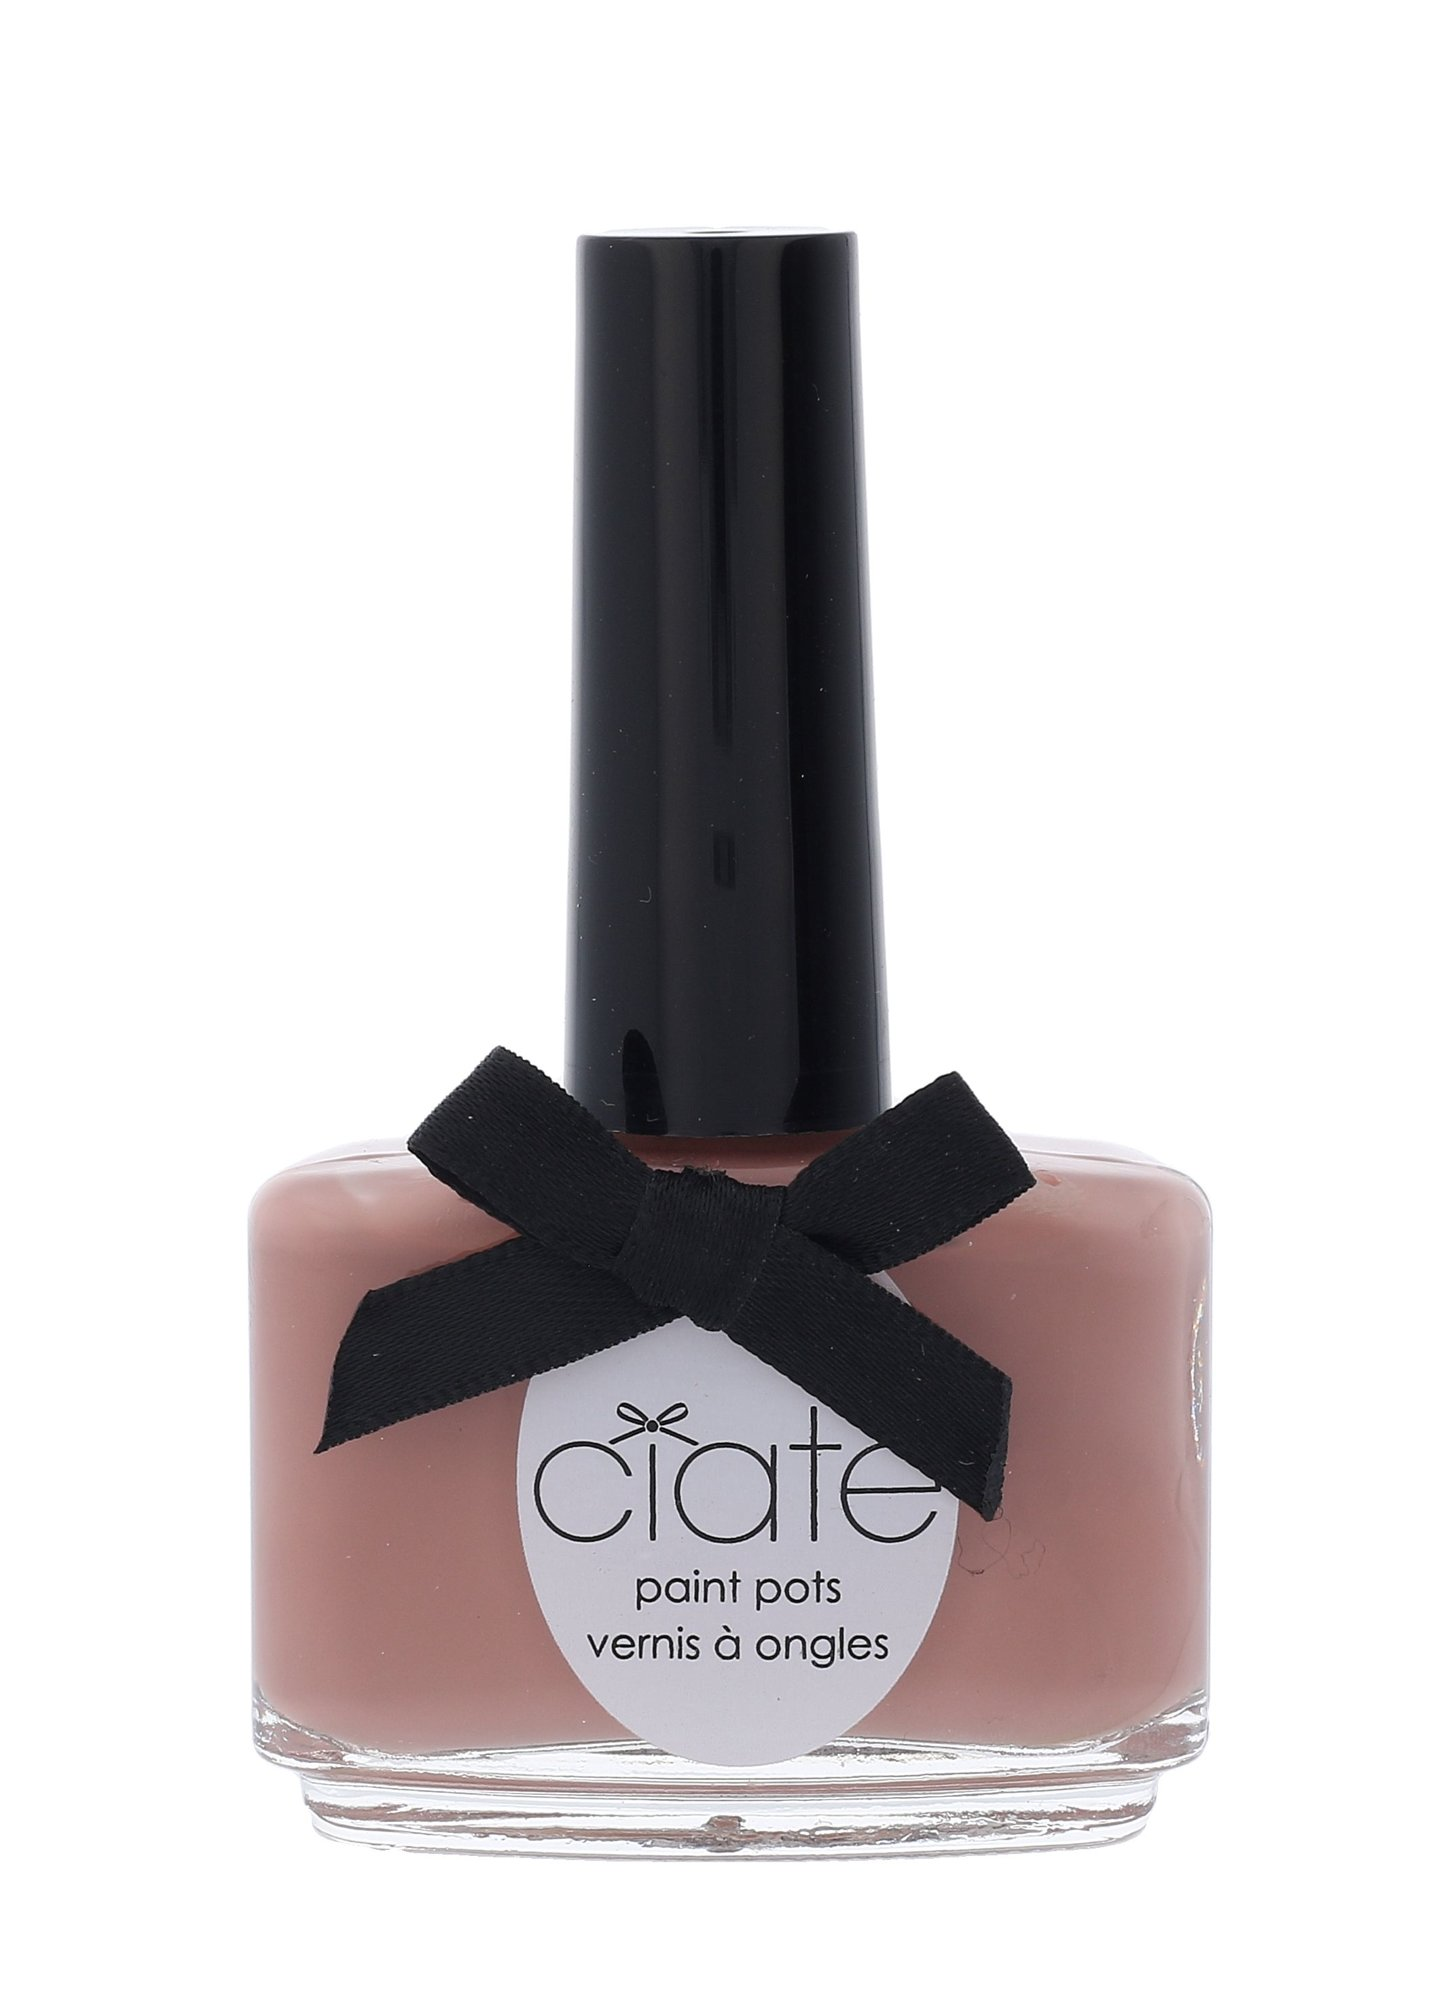 Ciaté Paint Pots Cosmetic 13,5ml PP107 Pocket Money